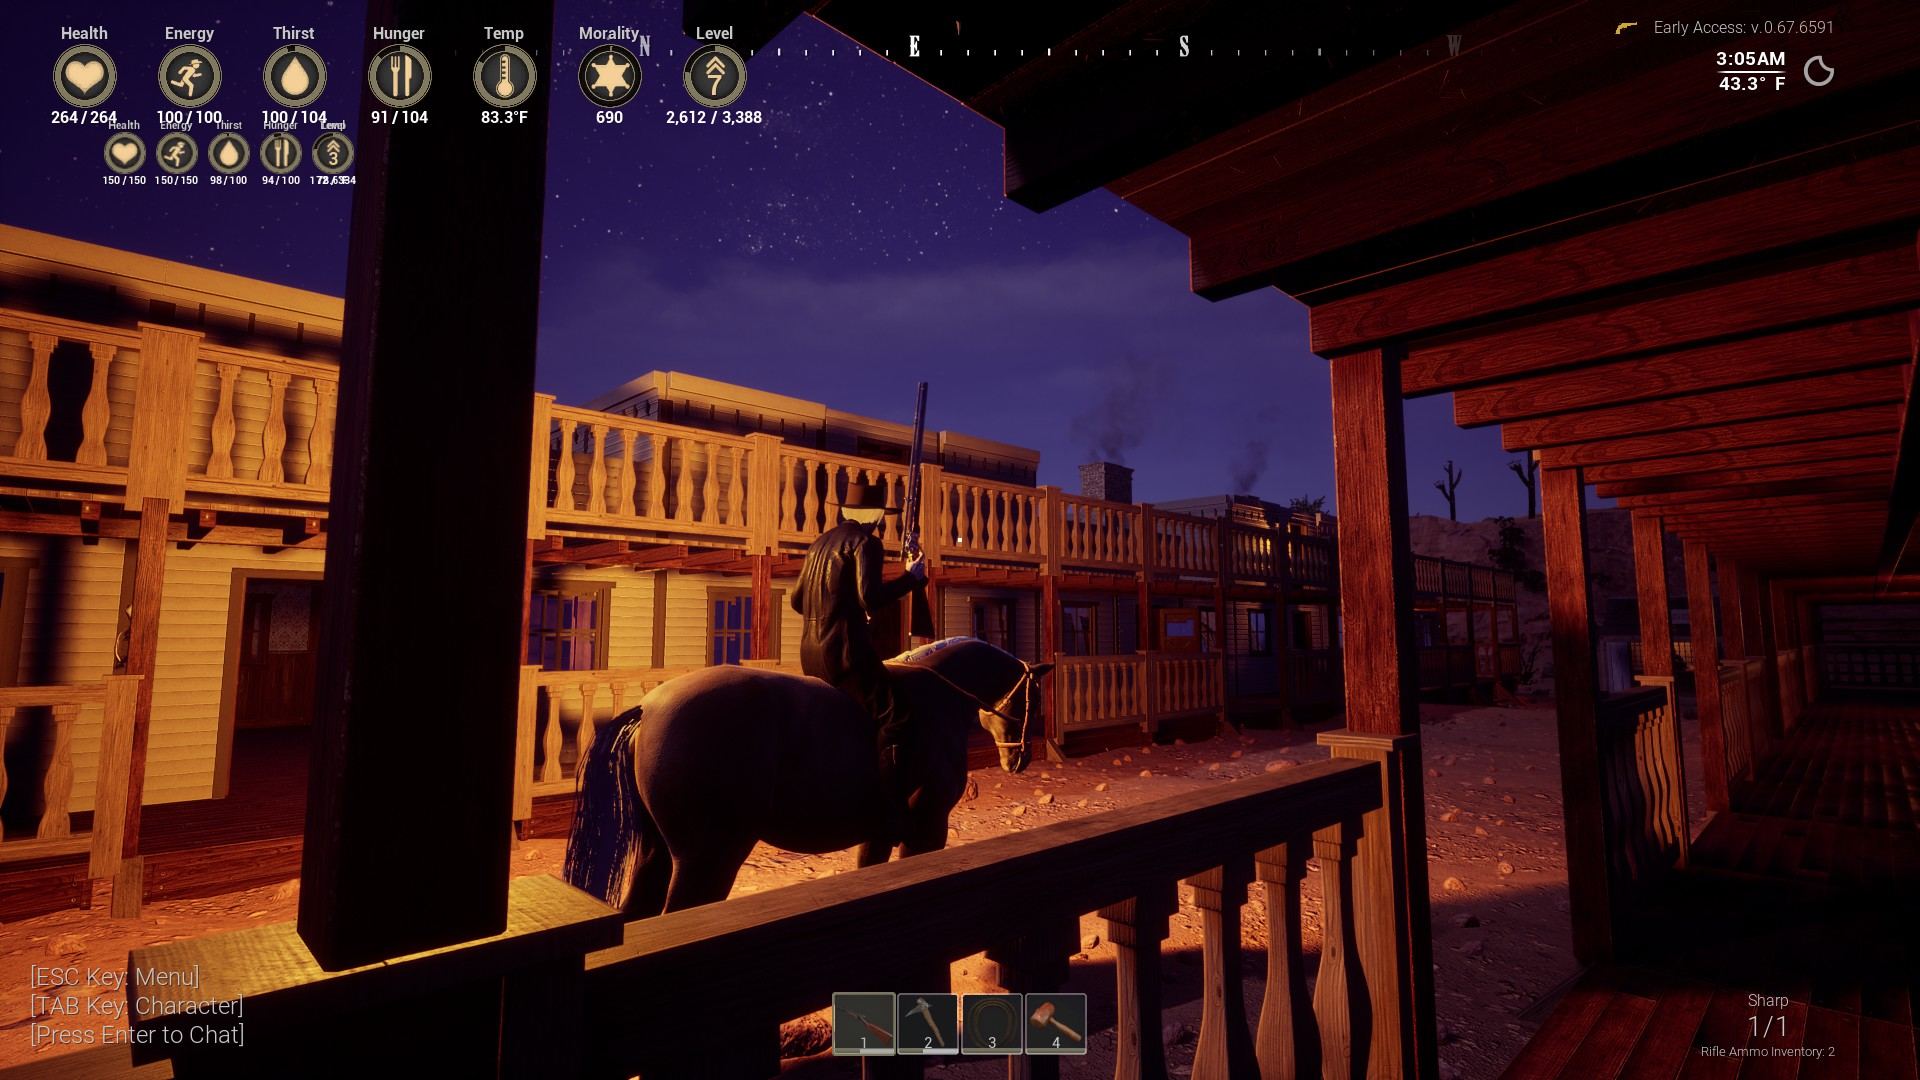 Snail Games' Outlaws of the Old West rustle up a Steam early access